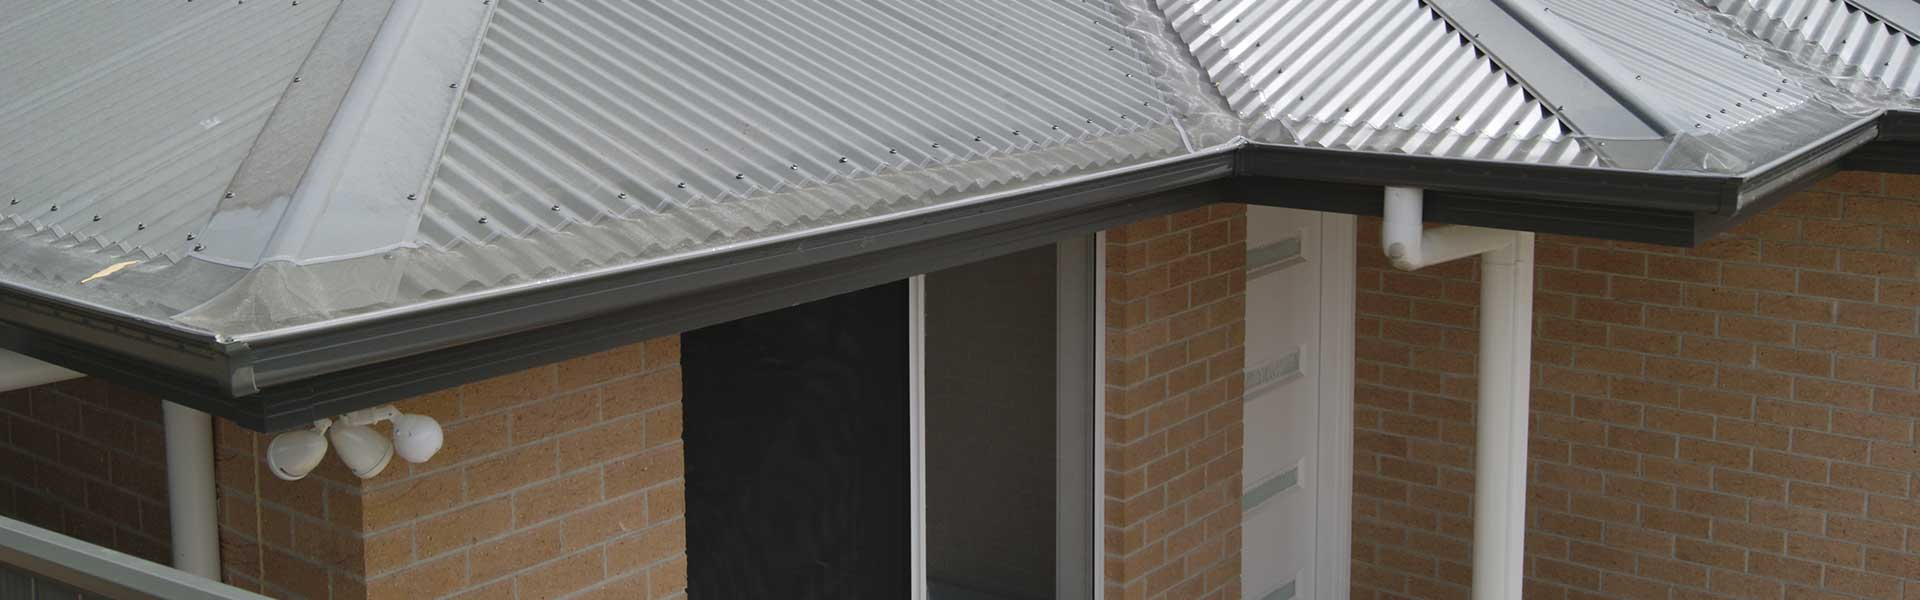 Leaf Free Melbourne The best gutter guard on the market